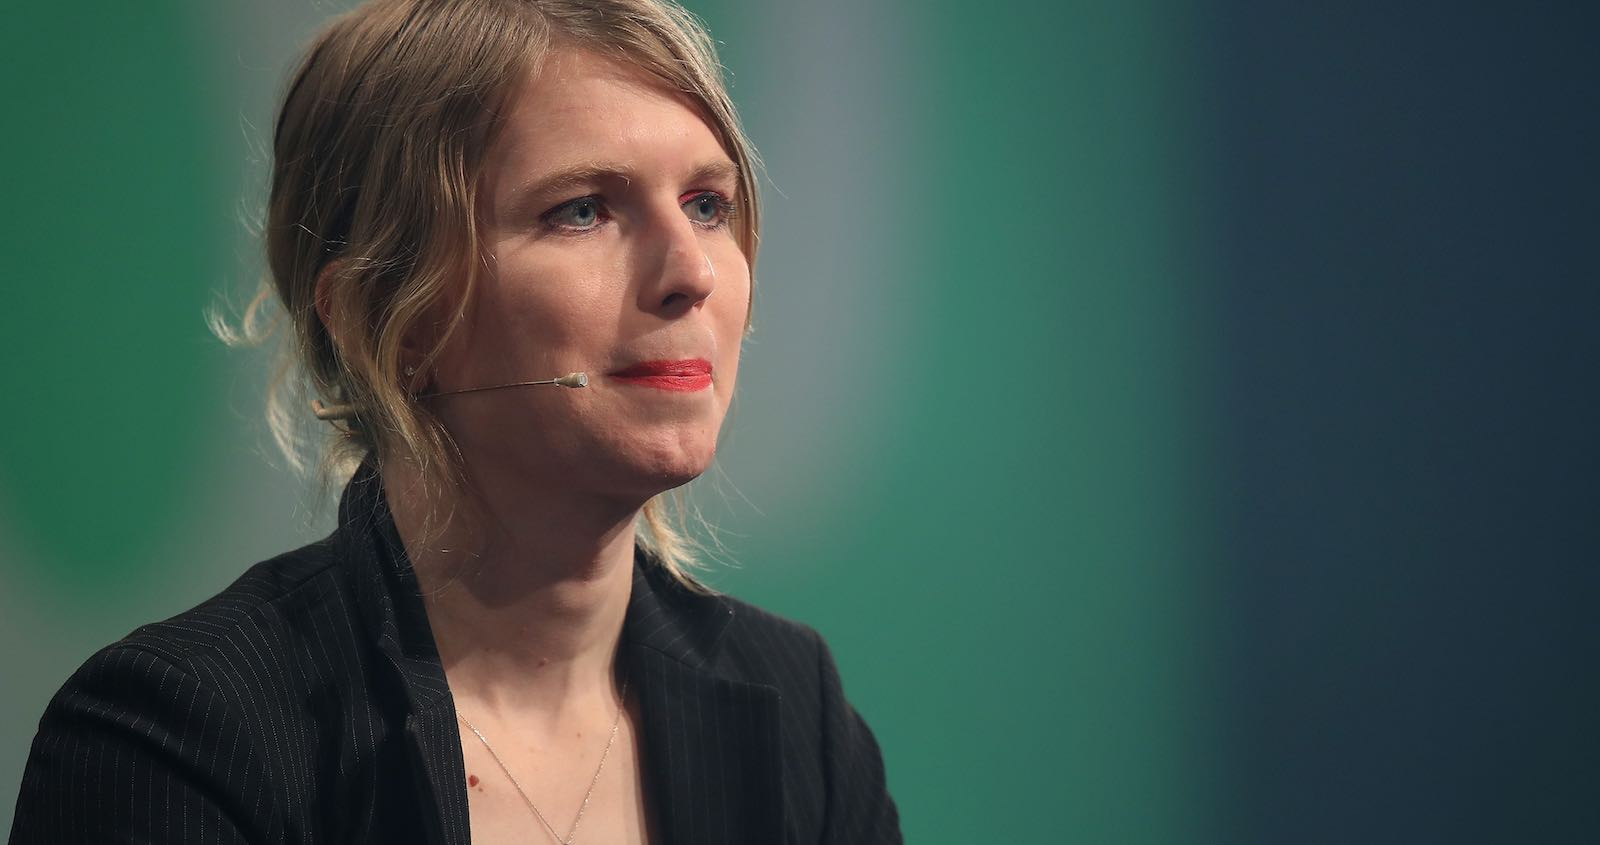 Chelsea Manning in May during an appearance in Berlin, Germany (Photo: Sean Gallup/Getty)